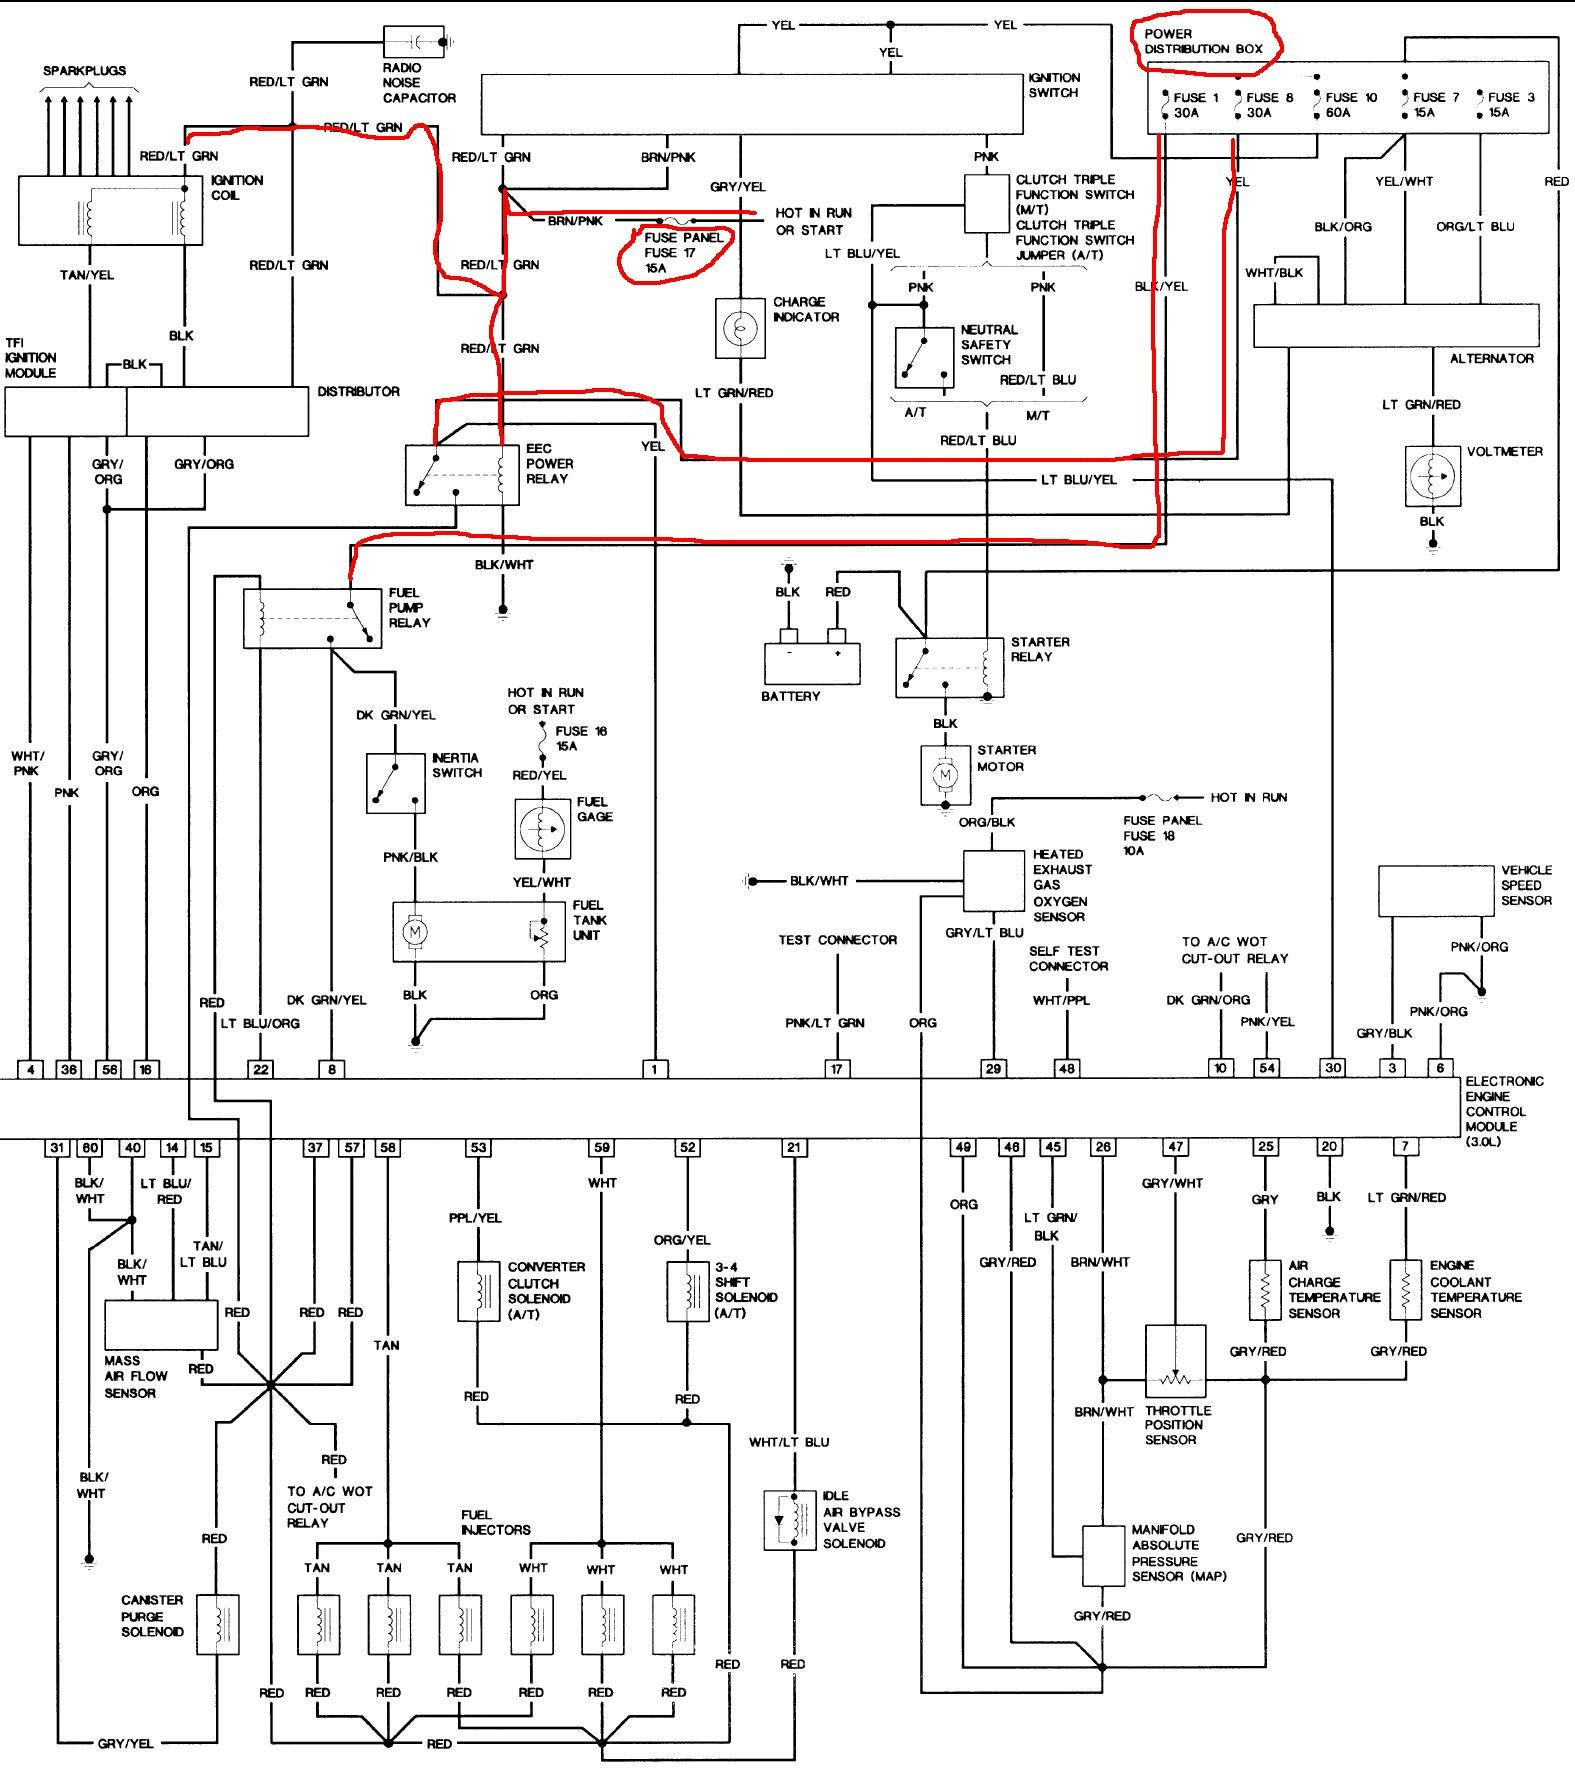 91 Explorer Wiring Diagram | Schematic Diagram on explorer engine diagram, explorer body diagram, explorer fuse diagram, 1997 ford explorer electrical diagram, explorer exhaust diagram, 2002 ford explorer window diagram, explorer front axle diagram, explorer transmission diagram, explorer suspension diagram, 2000 ford explorer diagram, 1995 ford explorer electrical diagram, explorer parts diagram,